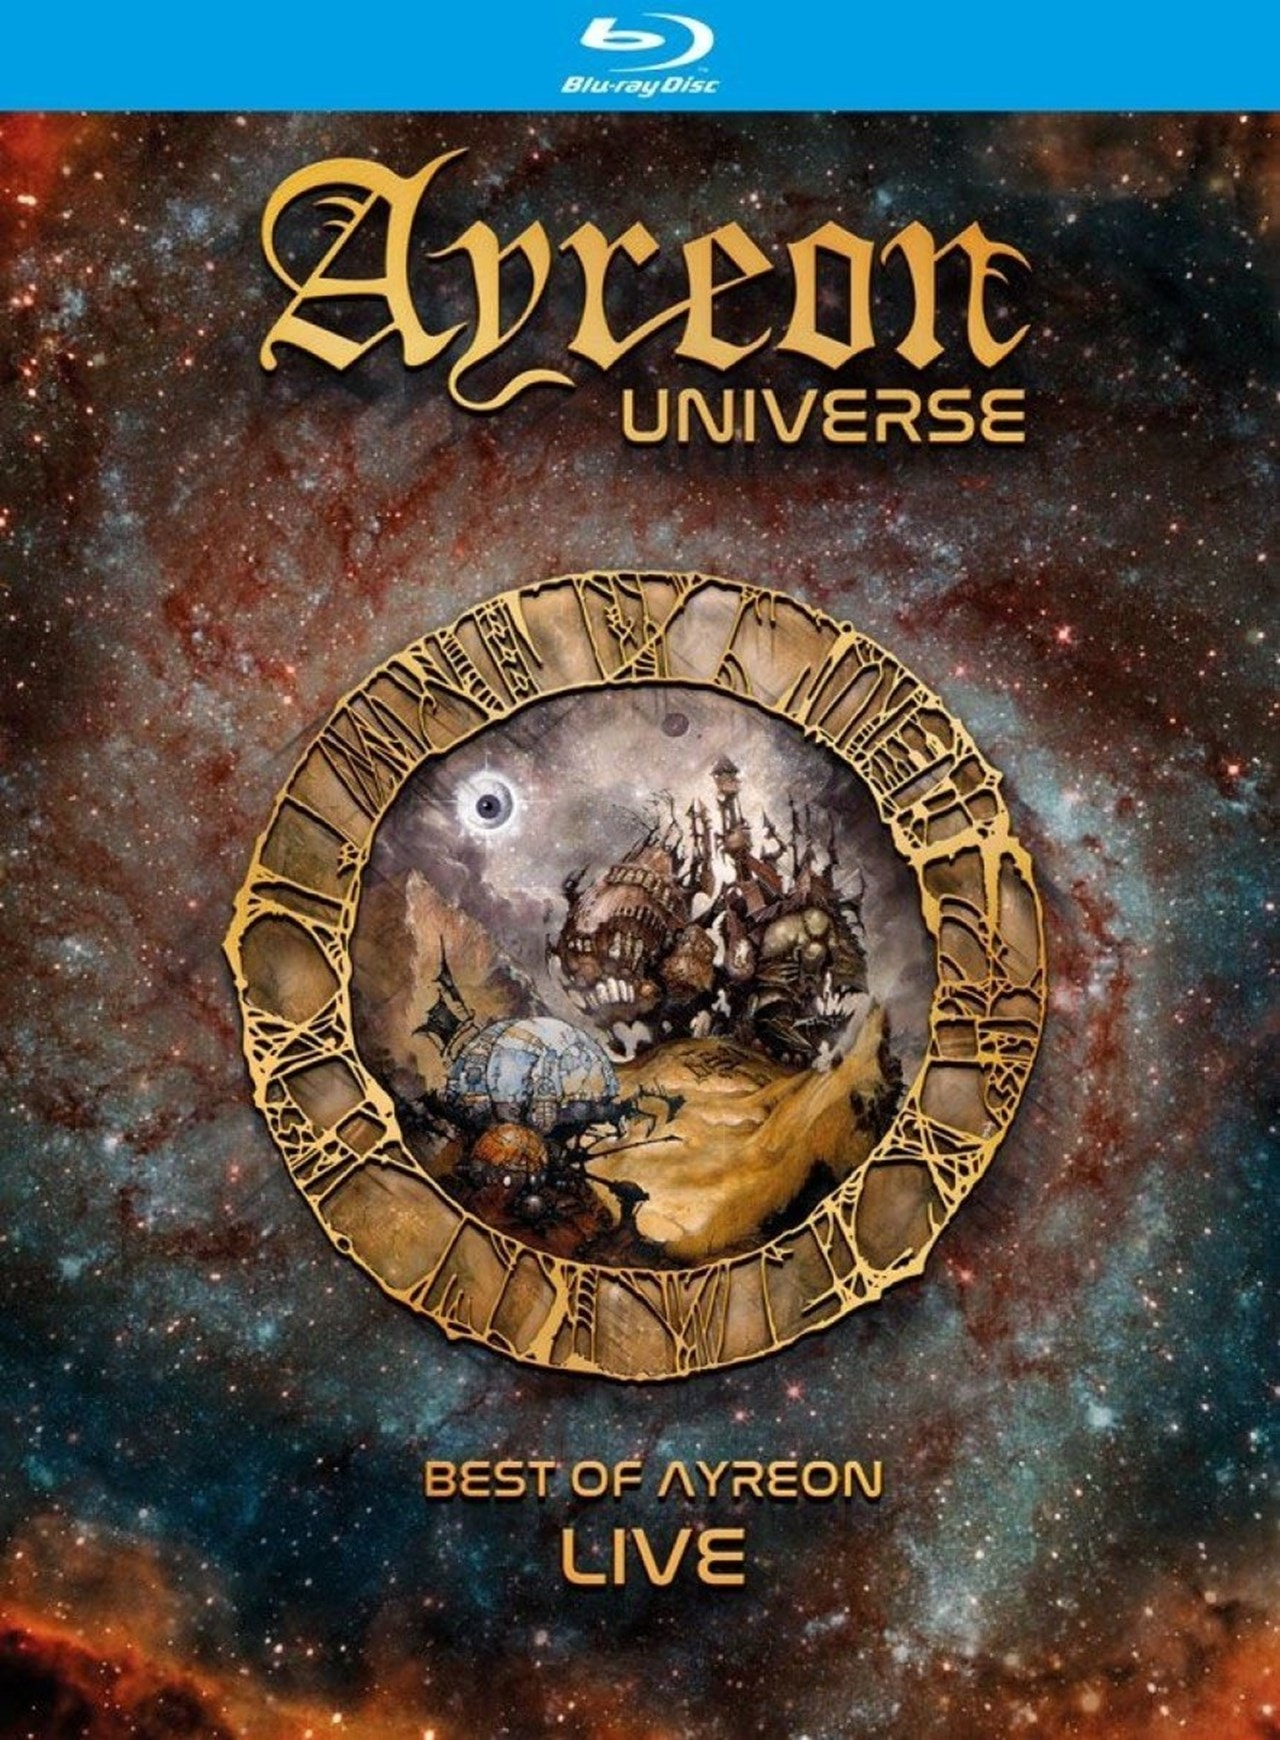 Ayreon Universe - Best of Ayreon Live - 1